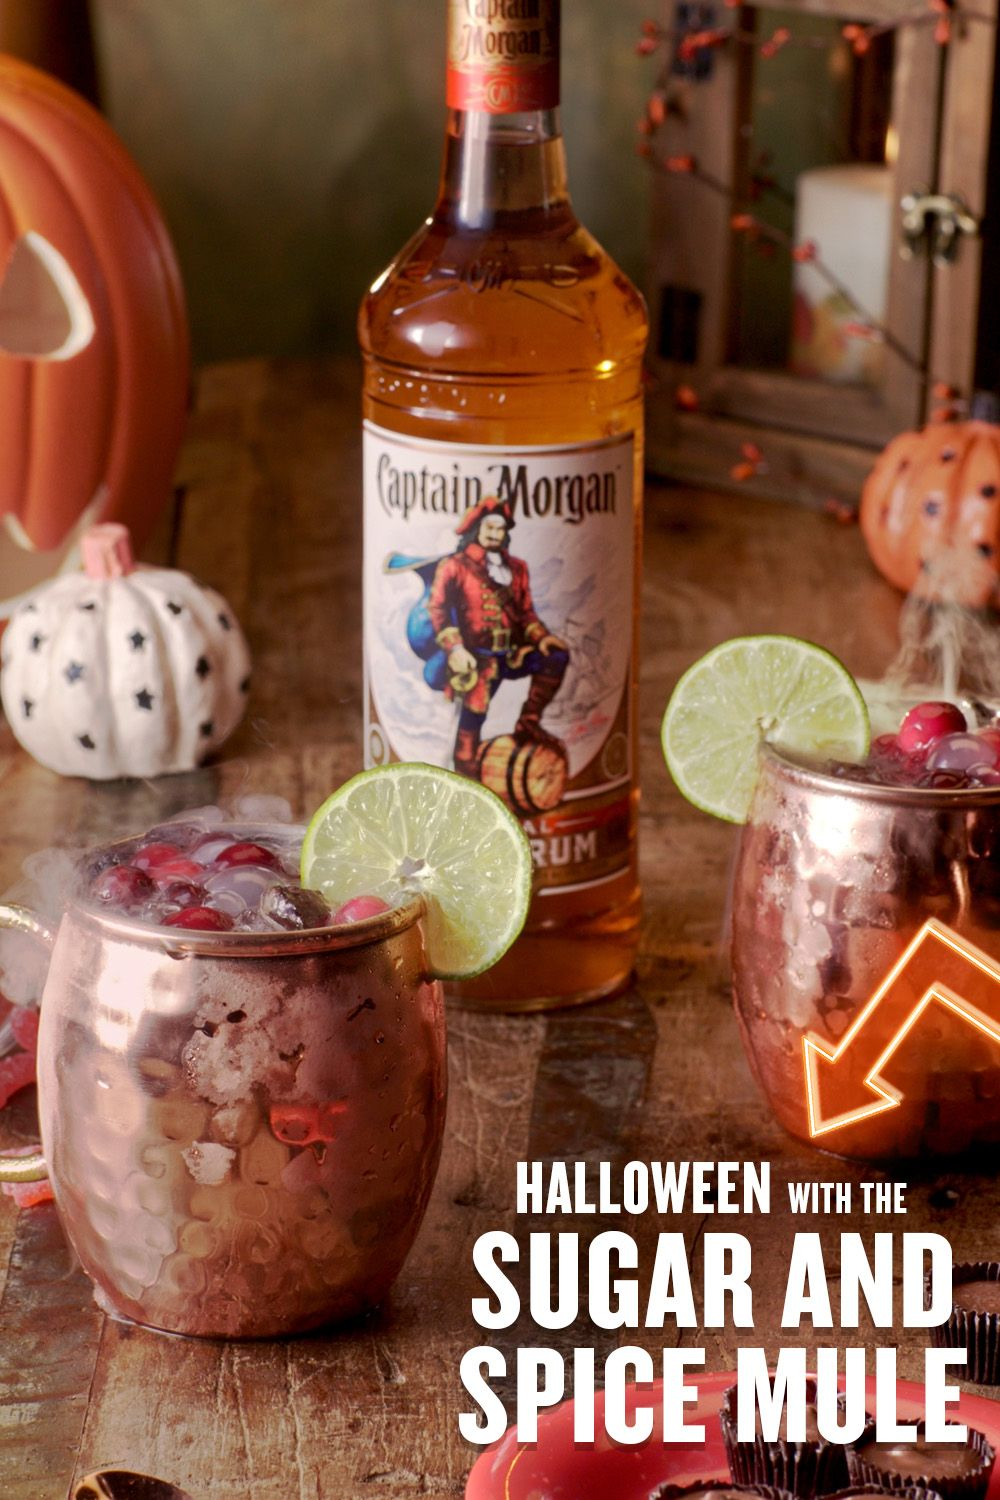 Halloween W The Captain Morgan Sugar Spice Mule Holiday Drinks Rum Cocktail Recipes Drinks